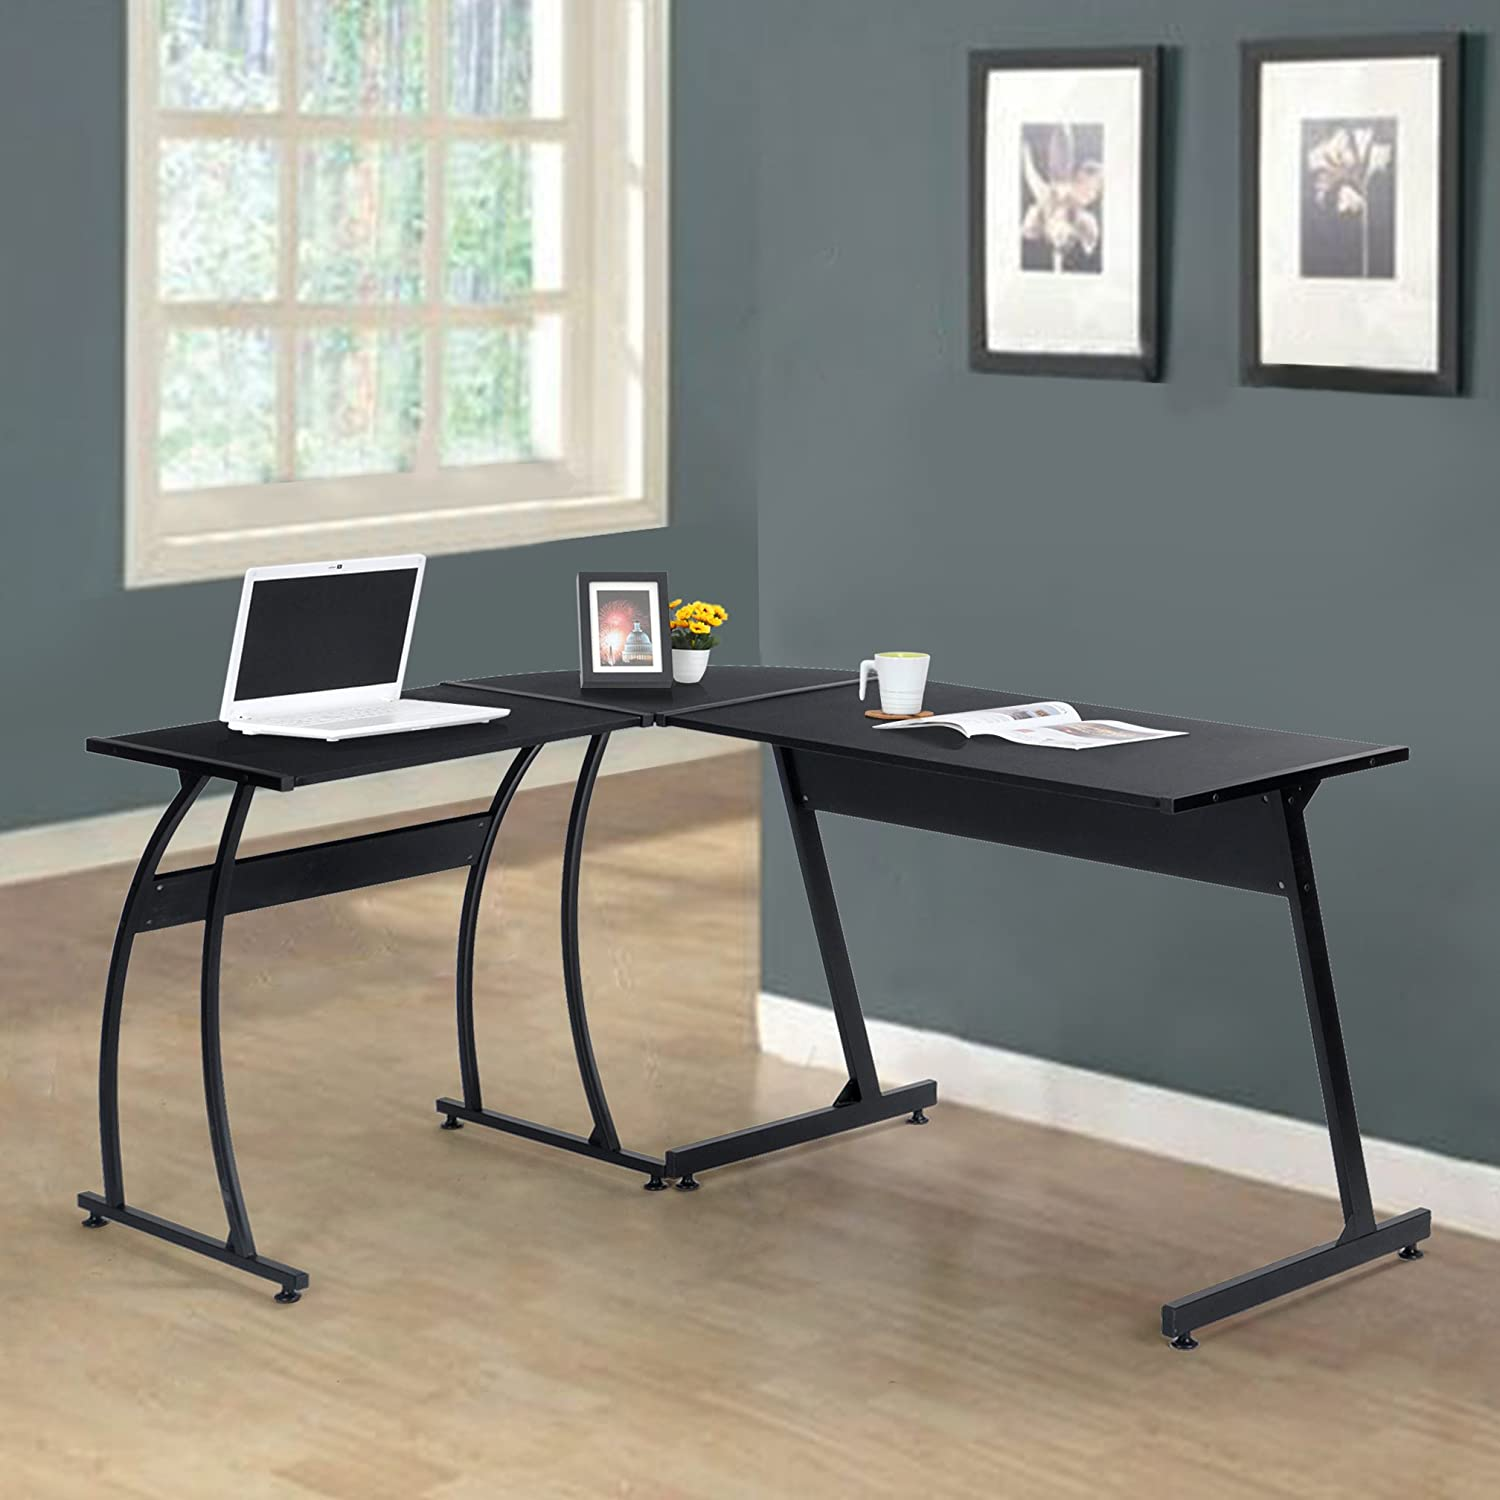 Wood and metal computer desk Reclaimed Wood Amazoncom Black Finish Metal Wood Lshape Corner Computer Desk Pc Laptop Table Workstation Home Office Kitchen Dining Dshop Amazoncom Black Finish Metal Wood Lshape Corner Computer Desk Pc